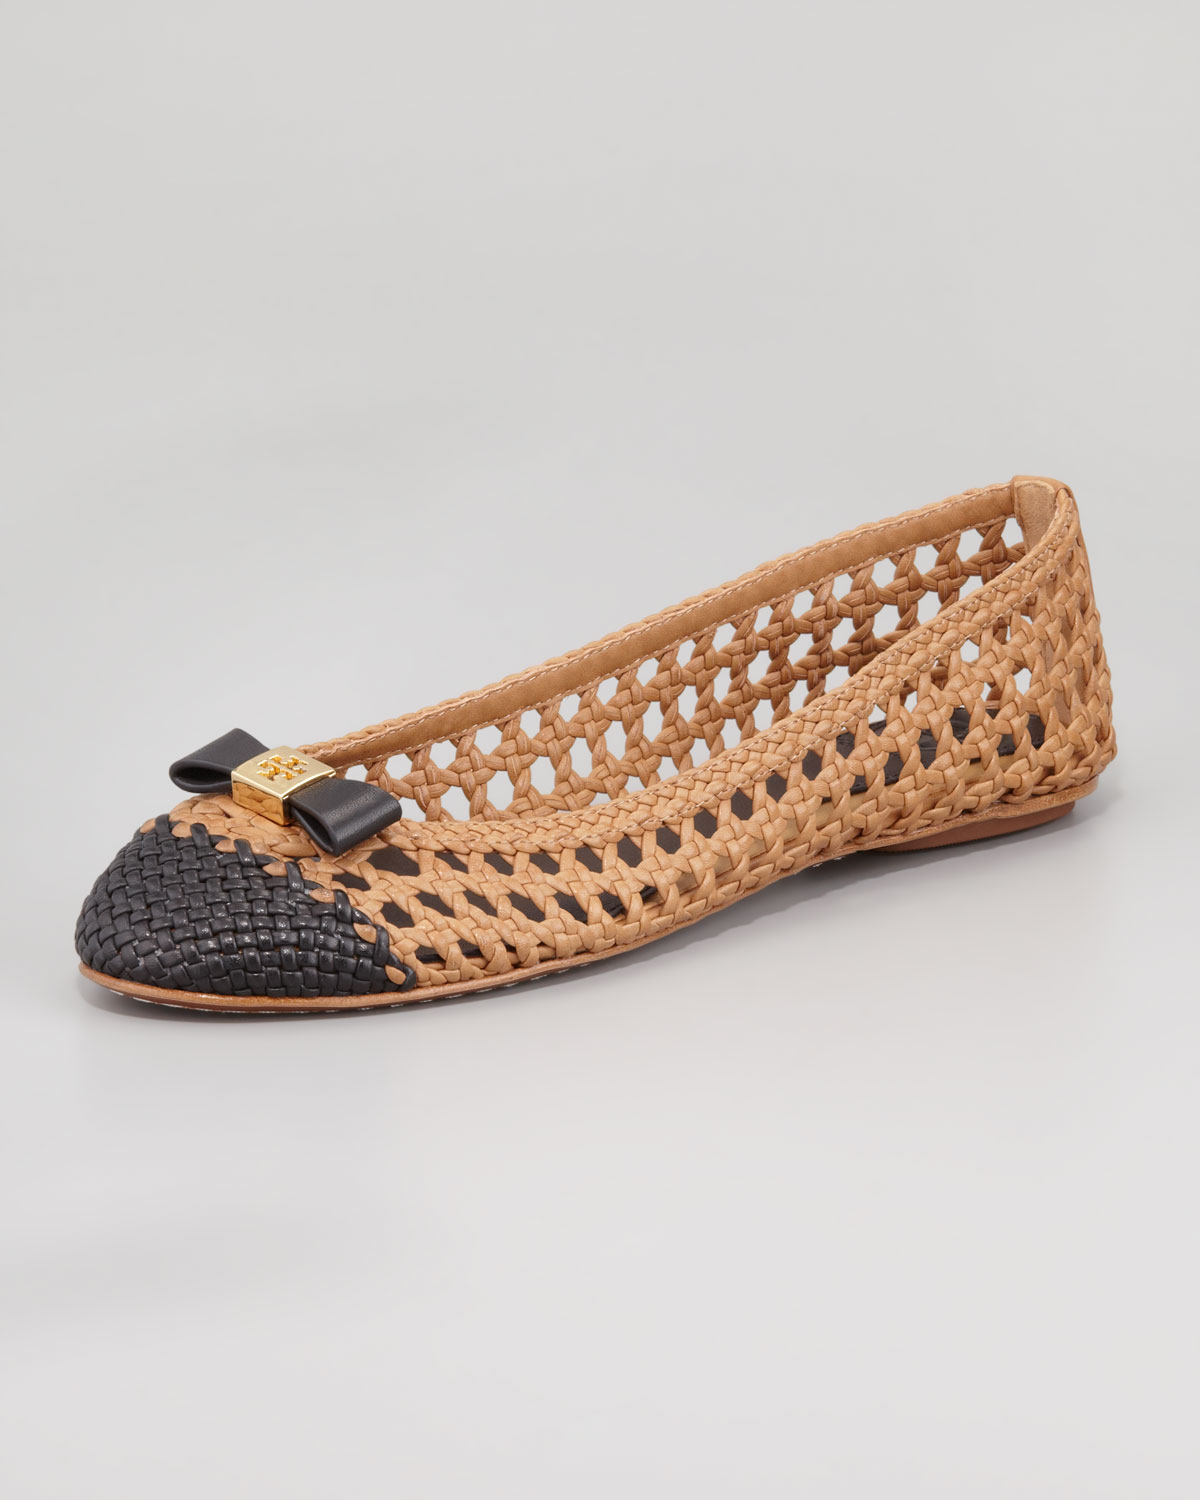 tory burch carlyle woven leather ballerina flat sandblack in brown lyst. Black Bedroom Furniture Sets. Home Design Ideas